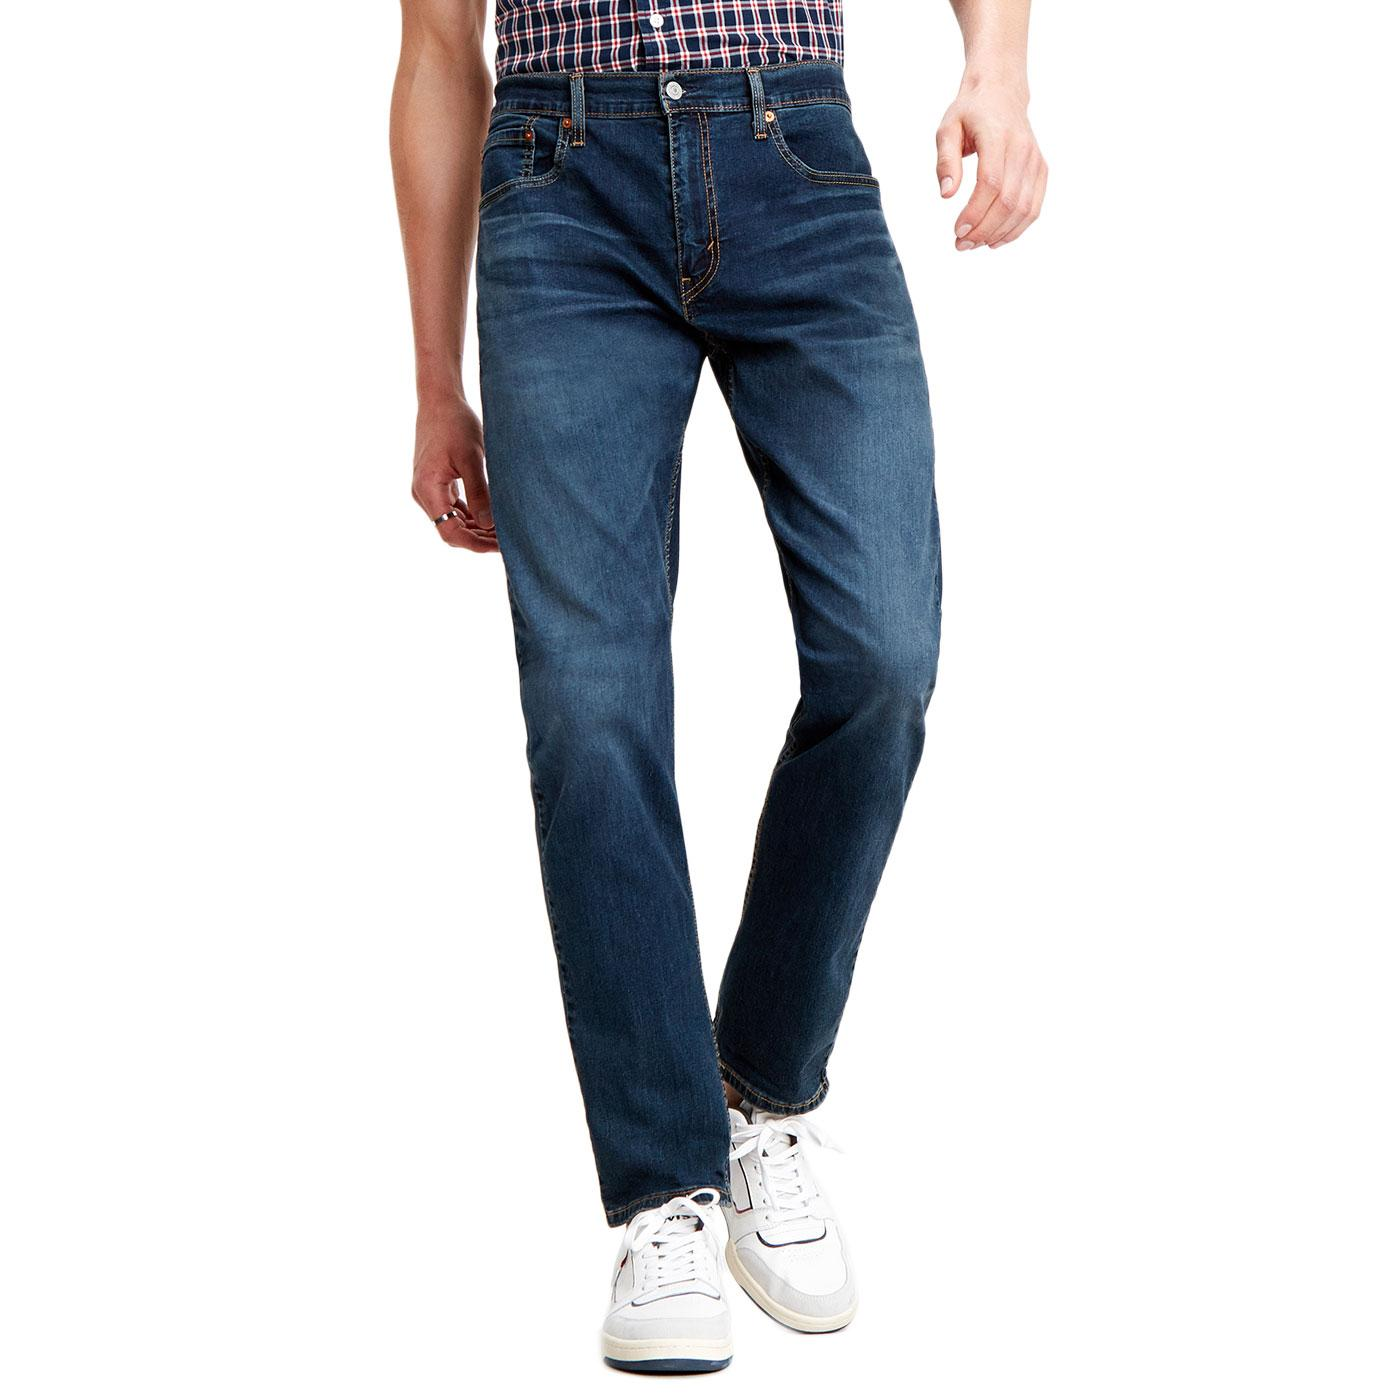 LEVI'S 502 Regular Taper Jeans (Swanee Swamp Cool)